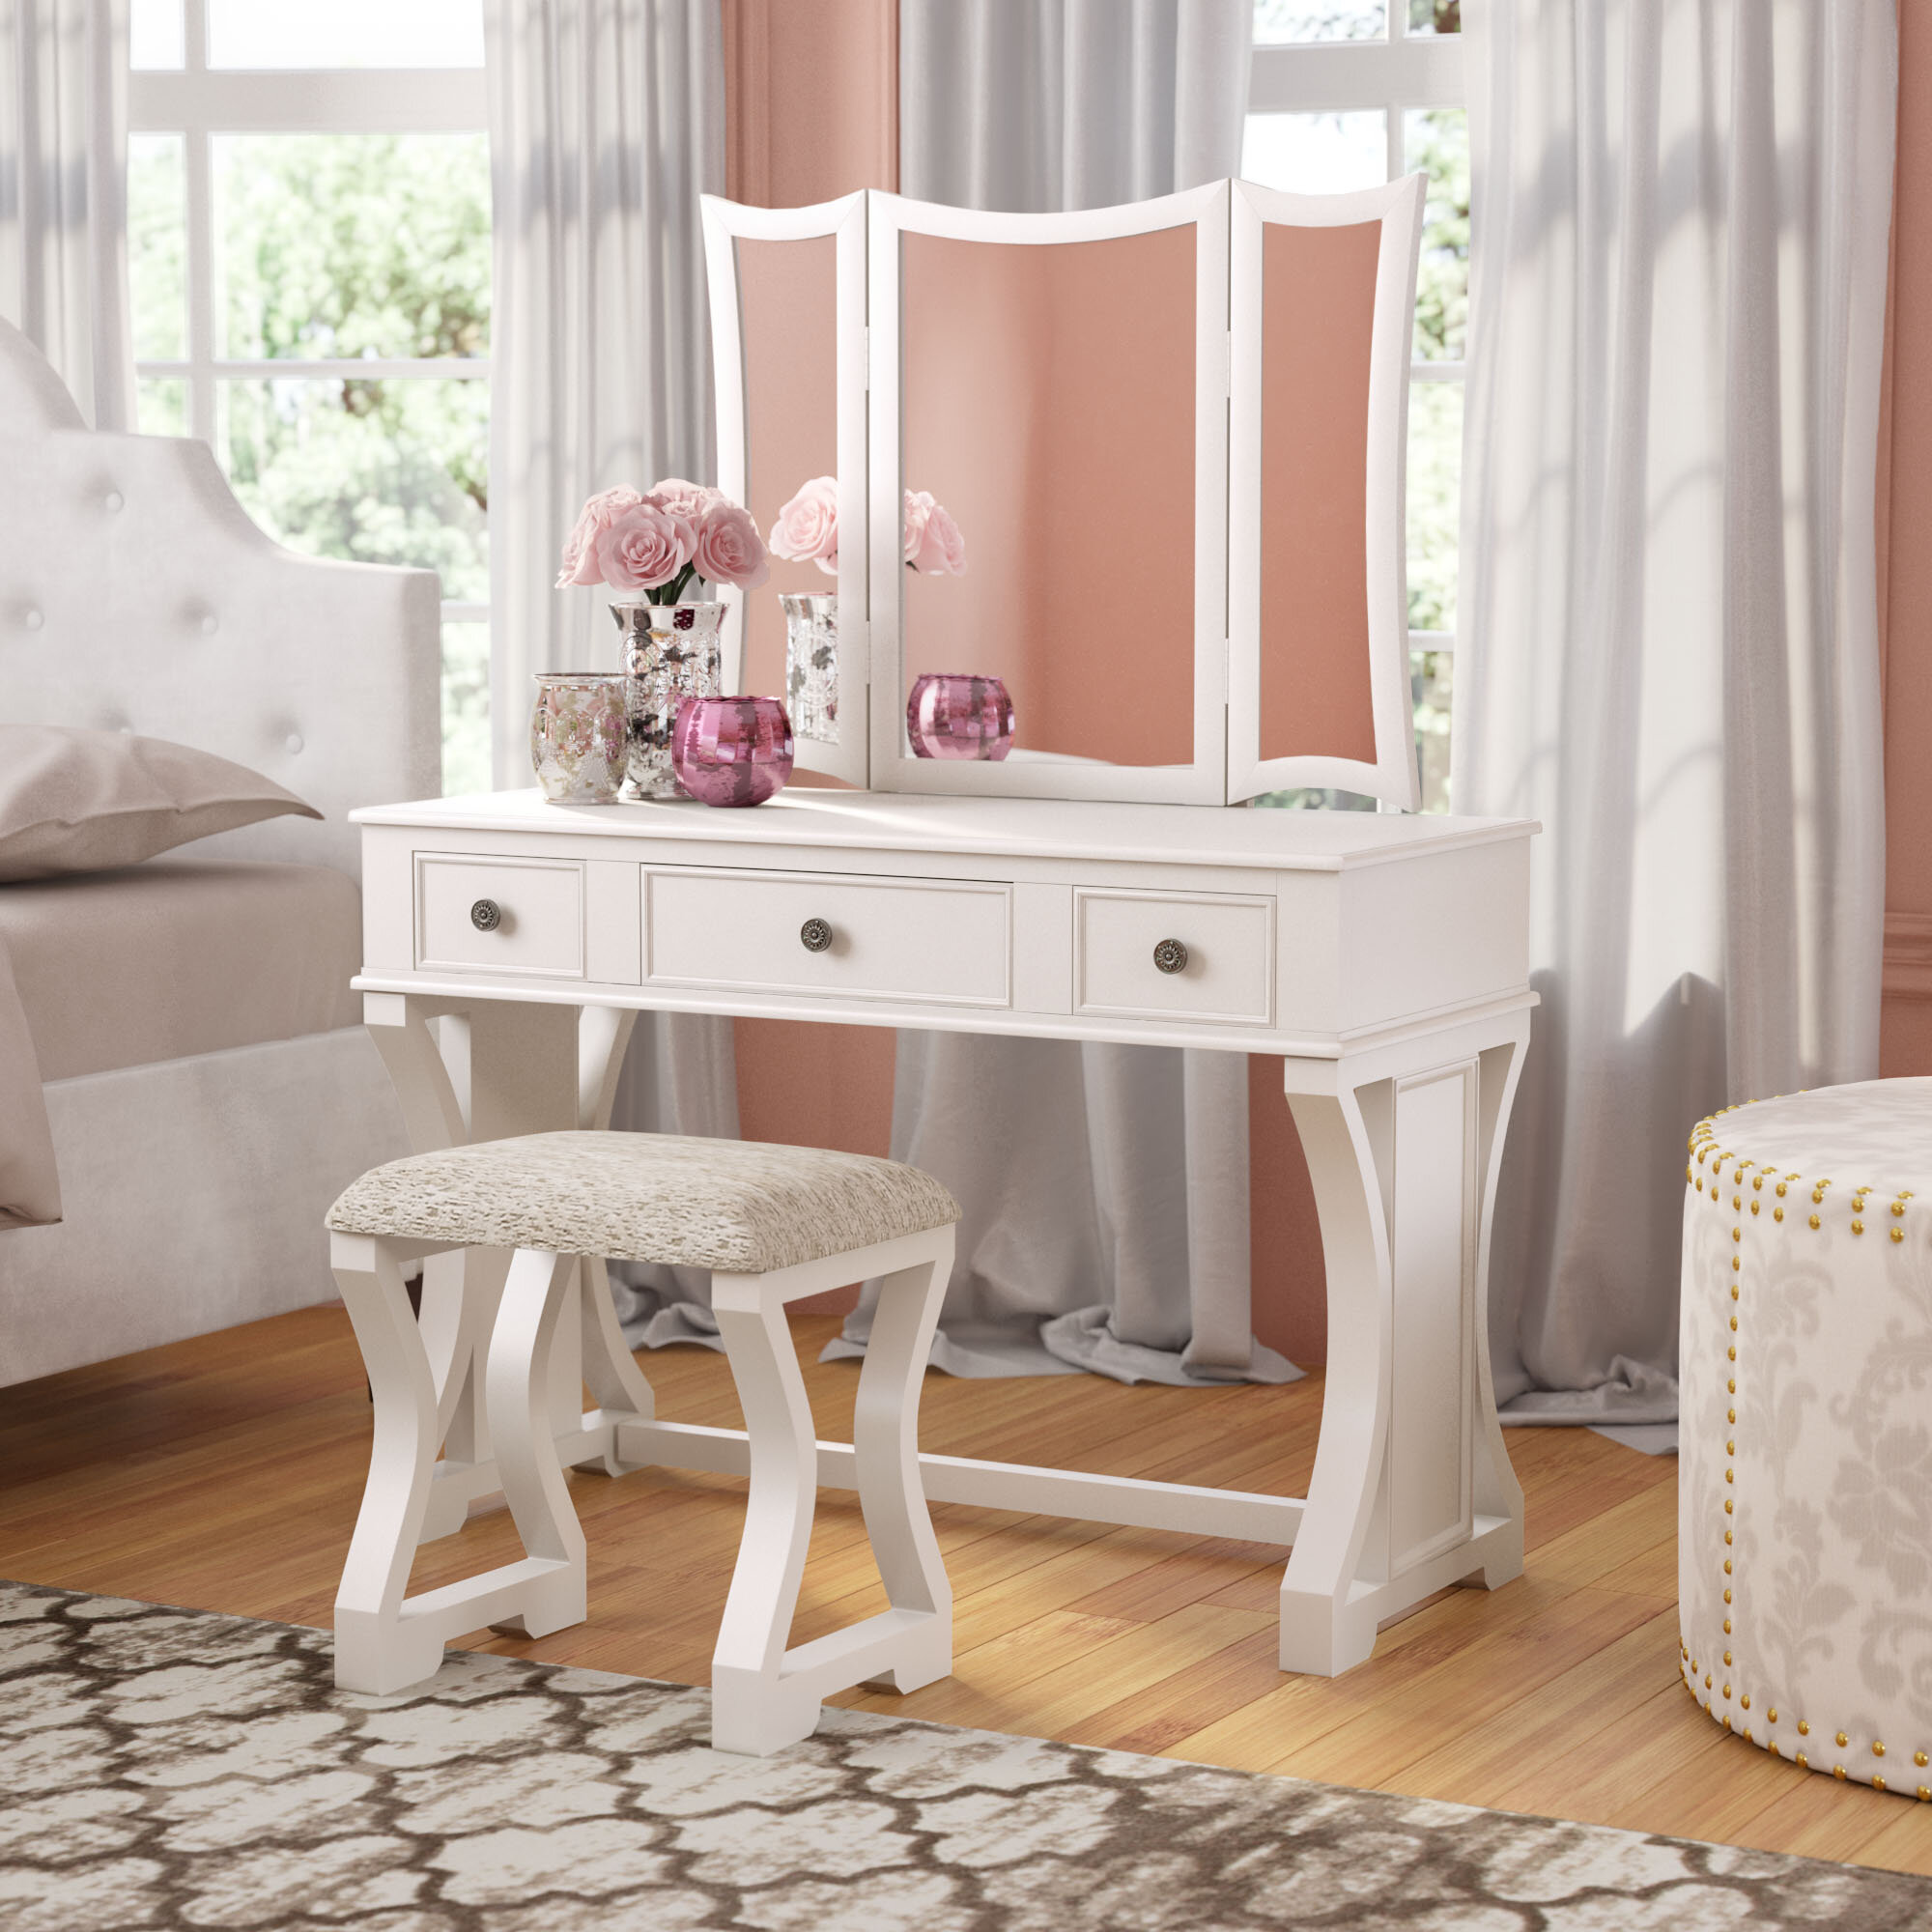 girls mdf foxhunter table itm mirror chair bedroom white makeup set dressing kids vanity